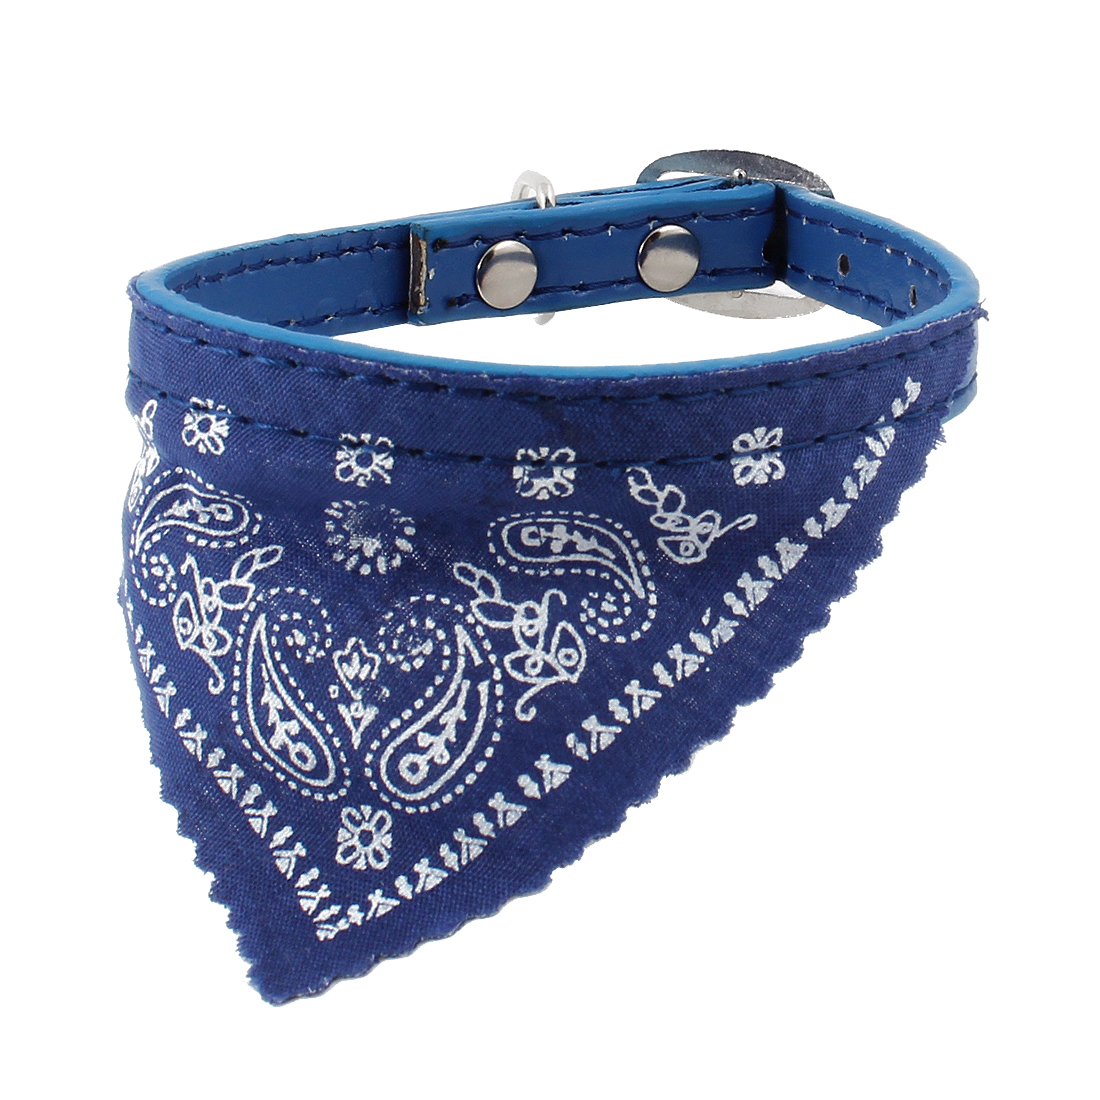 One Pin Buckle Triangular Scarf 5 Hole Belt Cat Dog Pet Neck Collar Blue